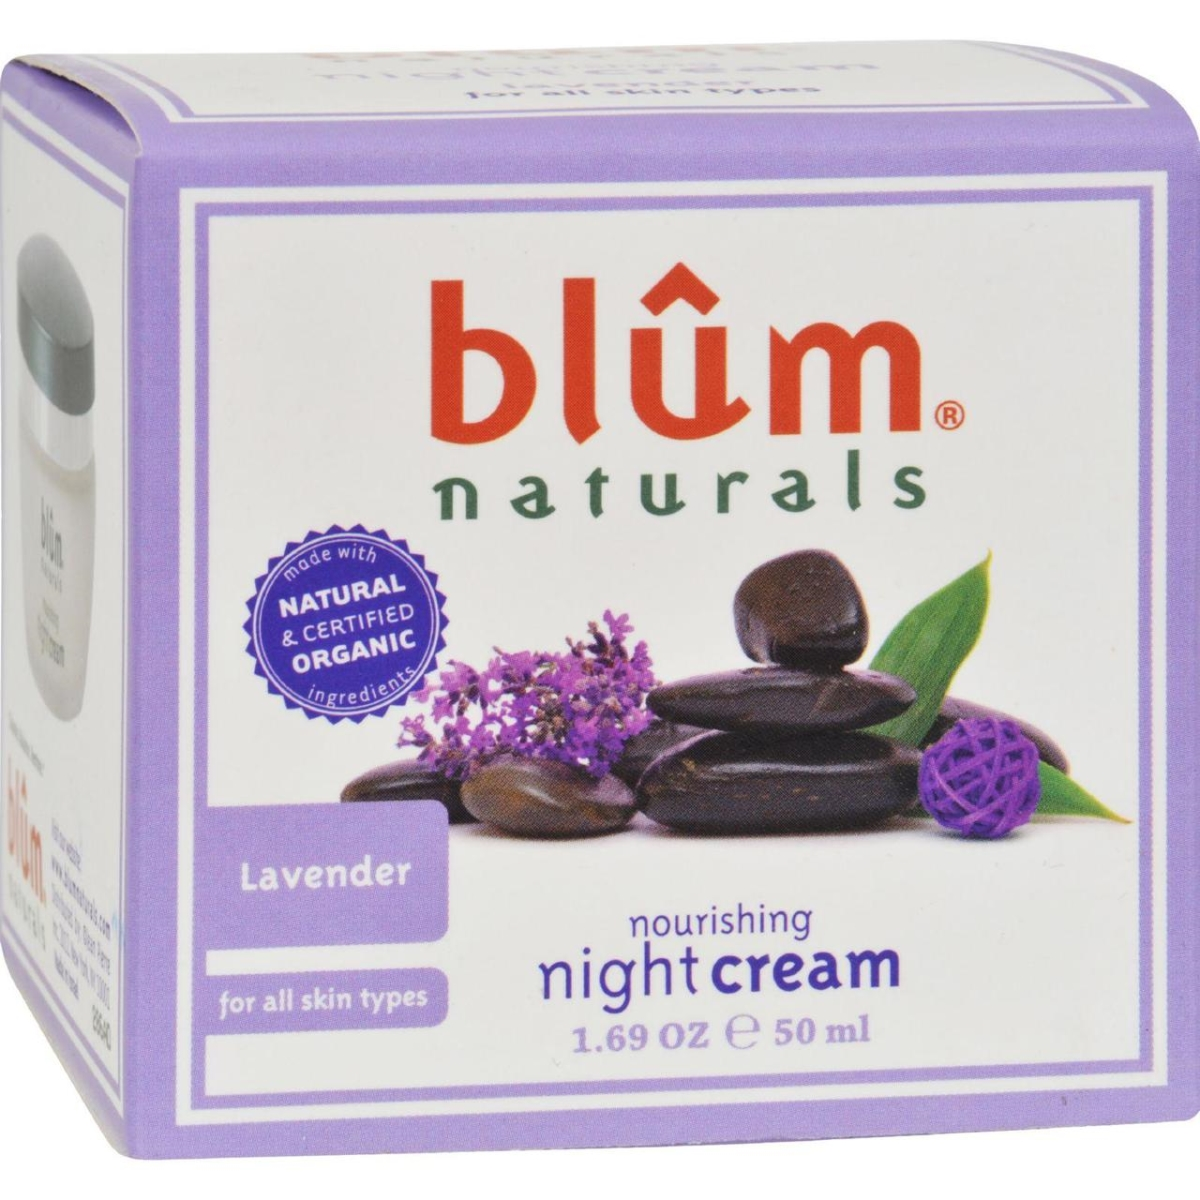 Blum Naturals HG1216563 1.69 oz Nourishing Night Cream - Lavender